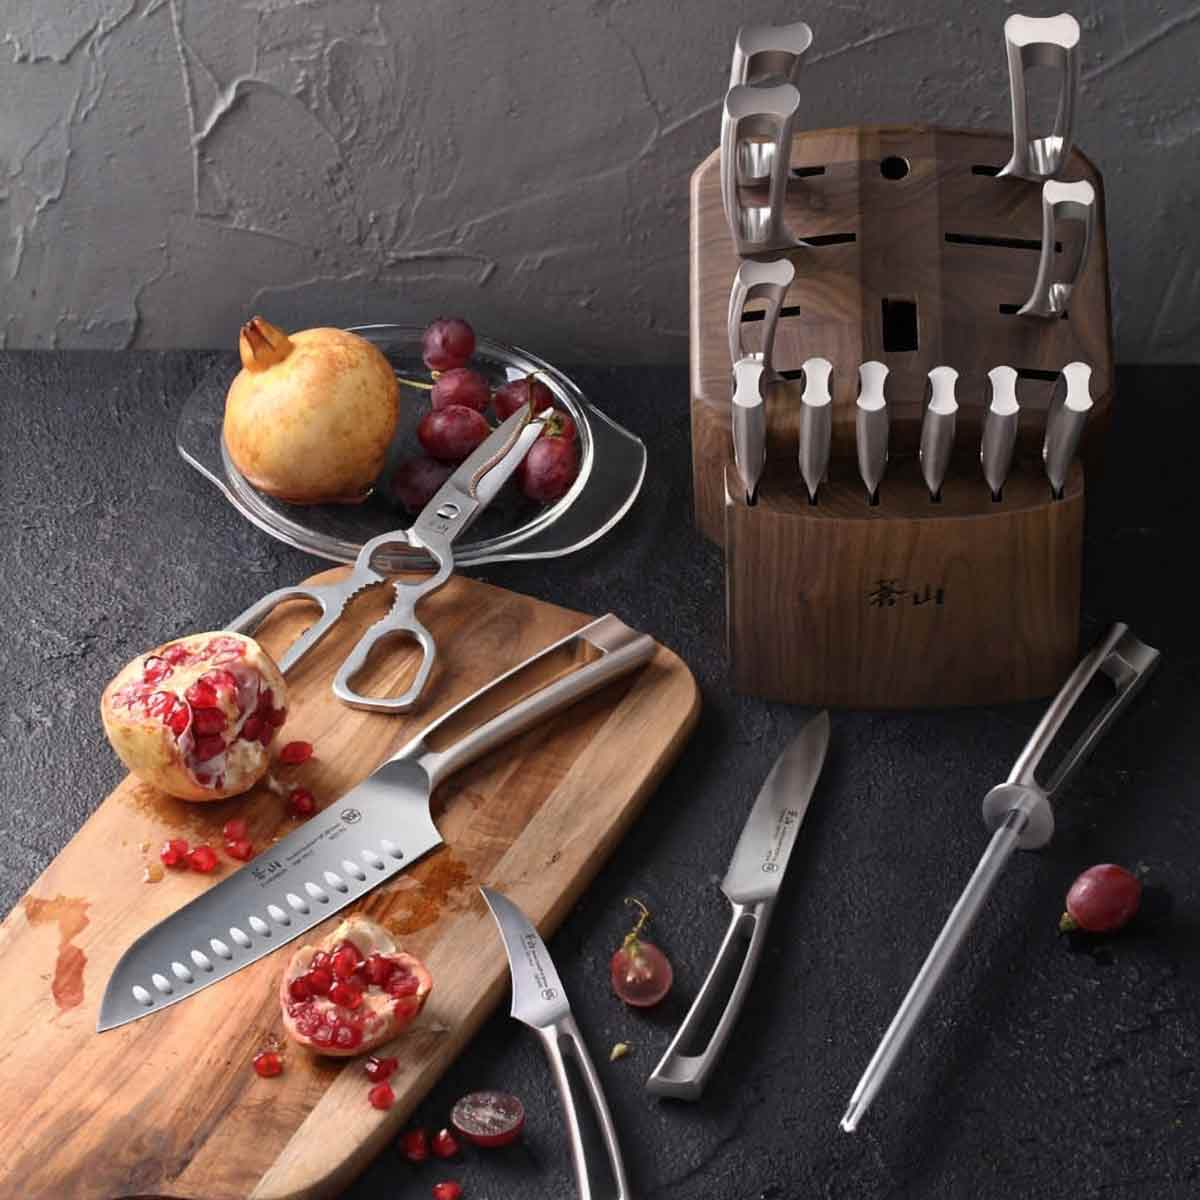 Cangshan TN1 Series 17-Piece Knife Block Set with grapes and pomegranate cut open.